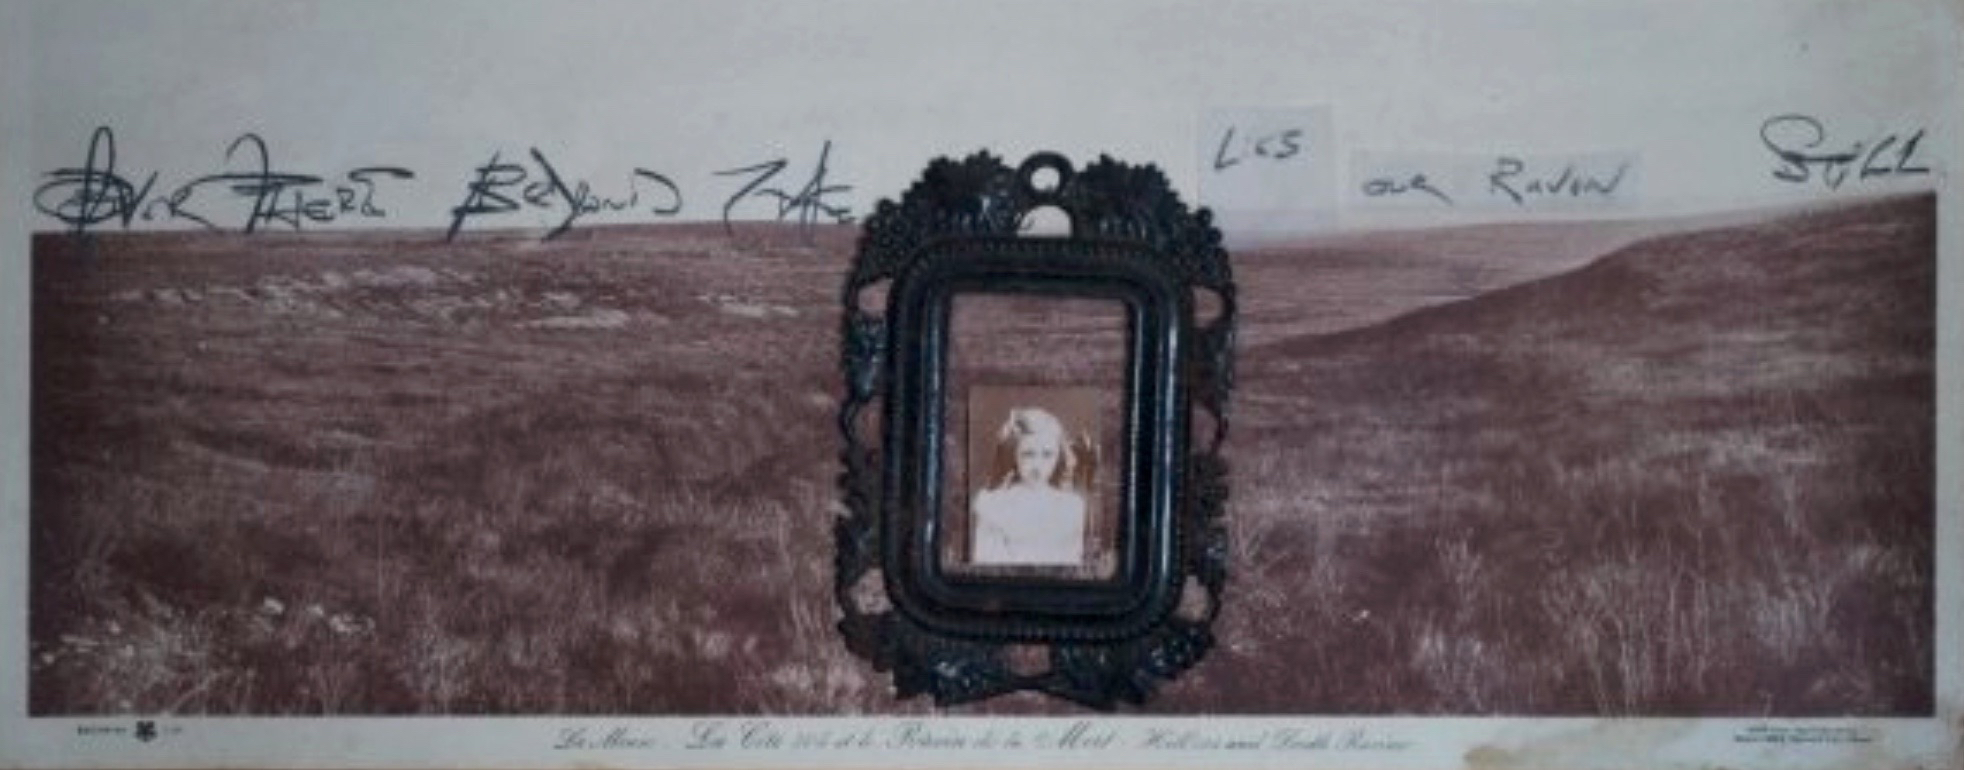 Raven de la Mort 1898/2011, found photos, antique frame, vellum, graphite, ~25x60 cm Copyright © Tennyson Woodbridge, 1963 to present. All appropriation rights reserved